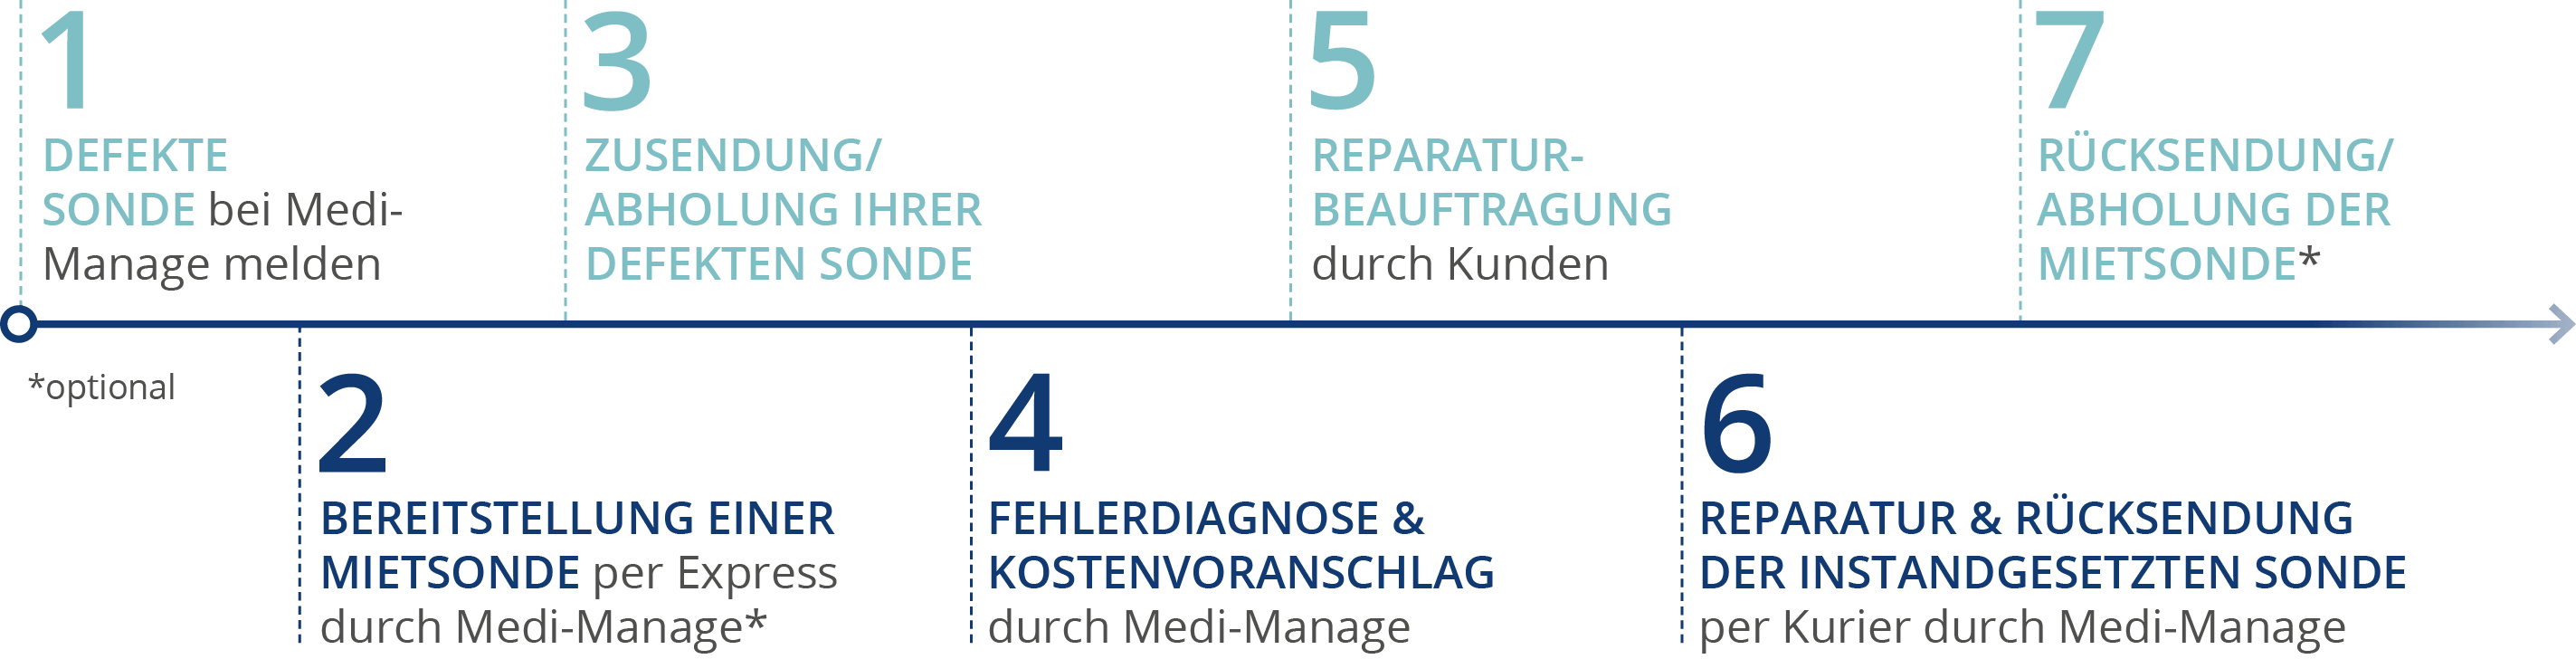 Service Sondenreparatur Medi-Manage Innovation